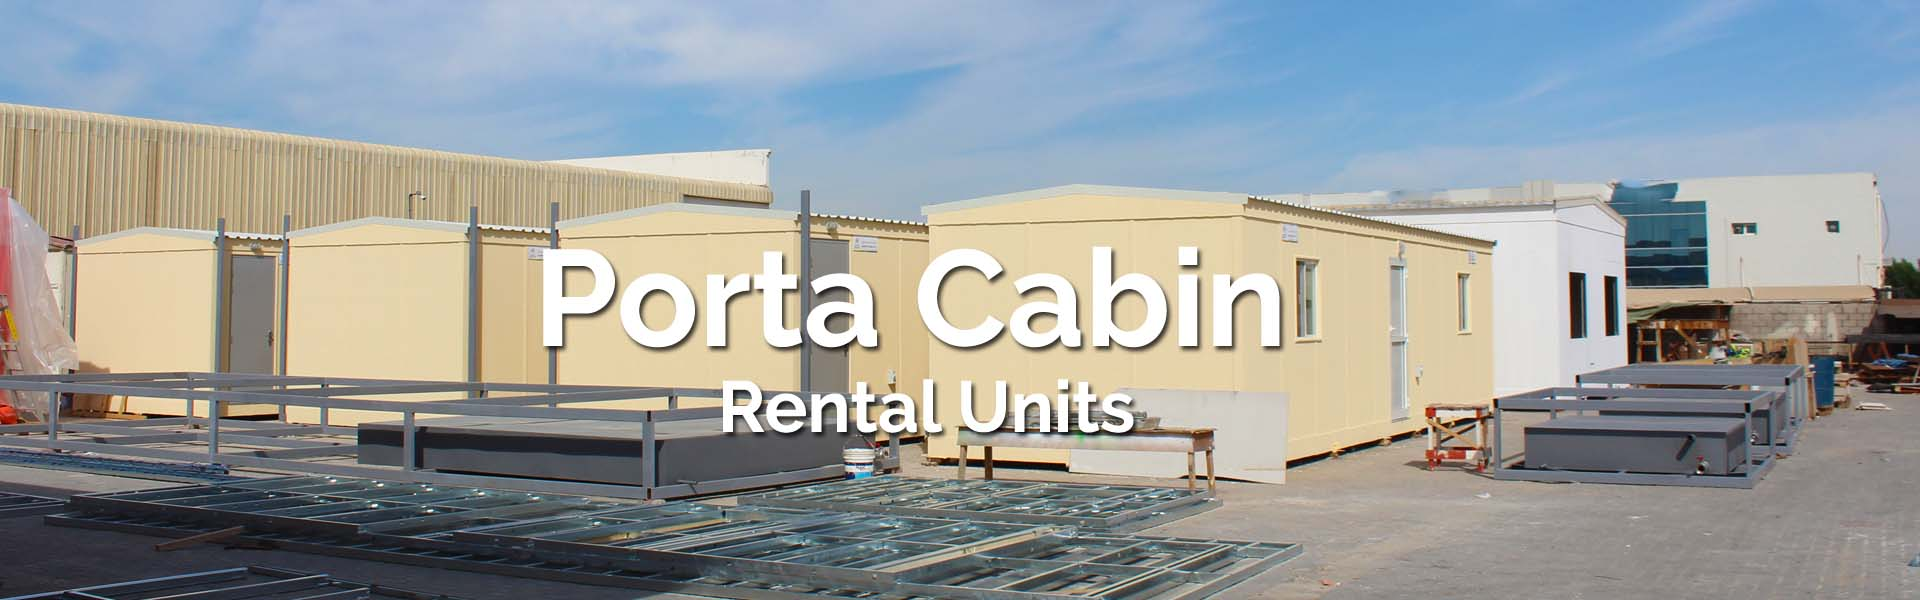 porta cabin rental in uae